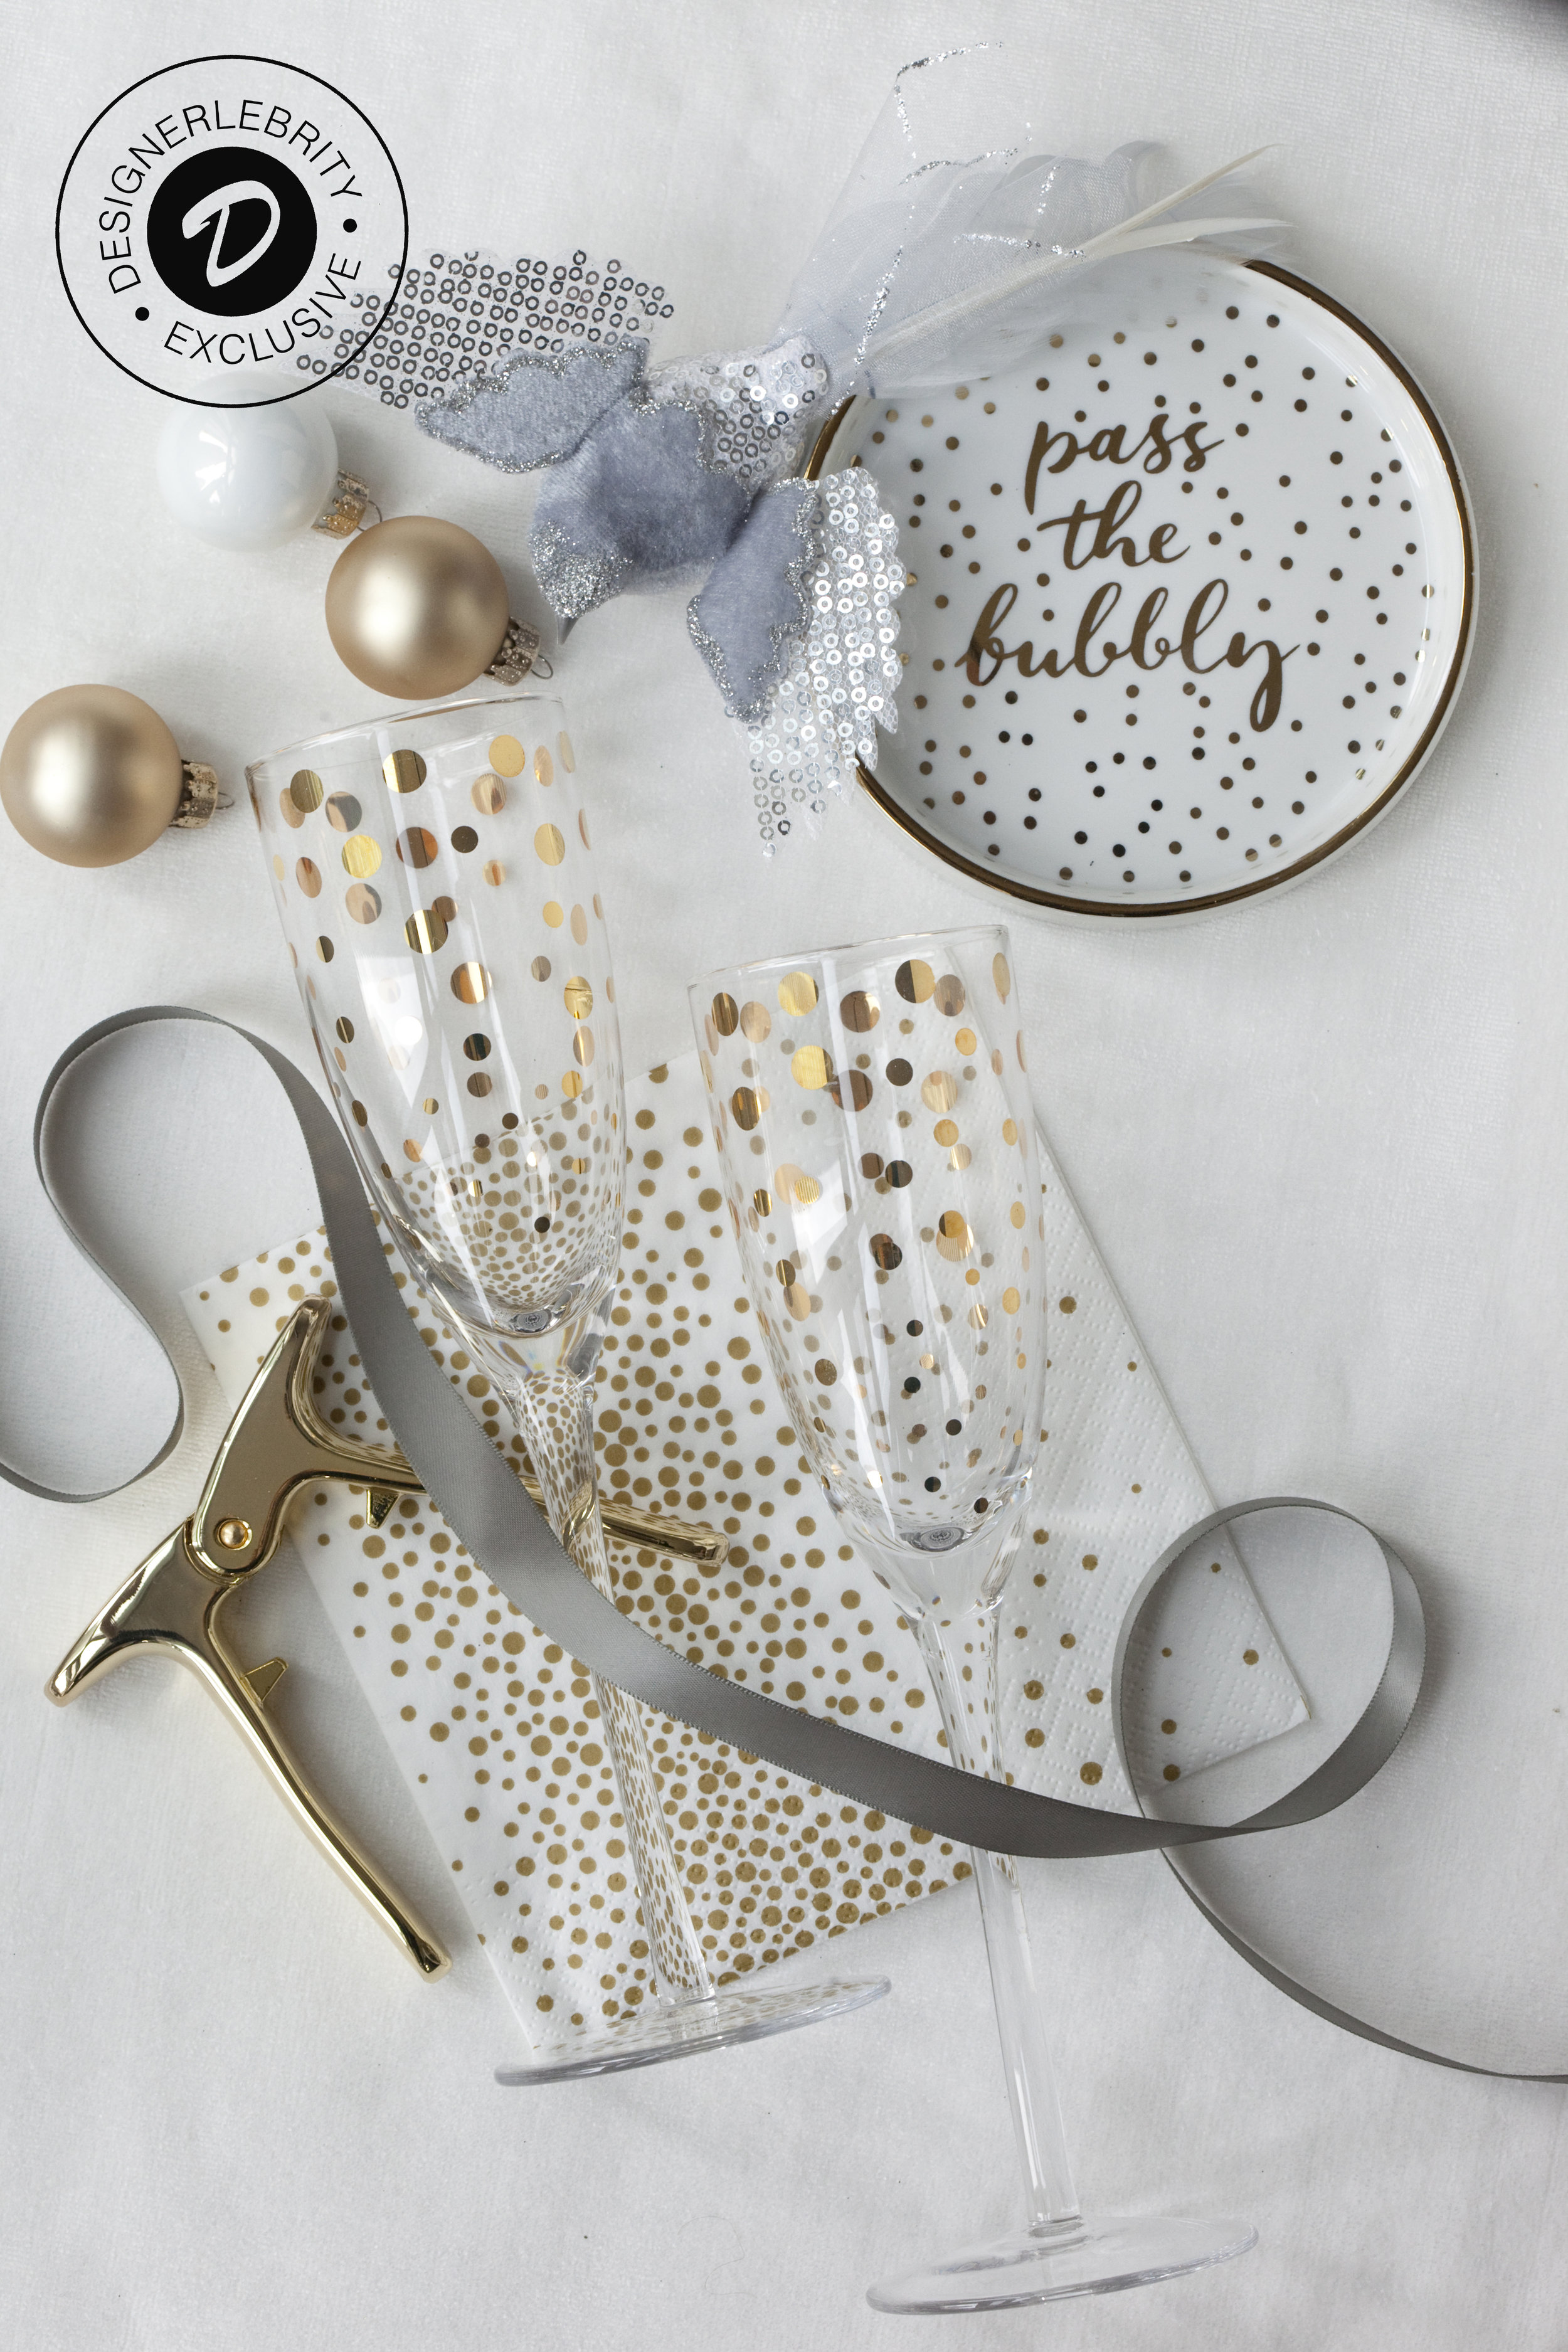 C&V DELUXE BOX INCLUDES: - ~ Two (2) Champagne Flutes by Abbott~ One (1) Champagne Puller by Viski~ One (1) Champagne Tray by Rosanna~ One (1) Package of Confetti Napkins by Abbott~ One (1) Velvet Bird Ornament by Abbott~ One (1) House and Home Magazine Dec IssuePrice: $59 (approximately USD) $74.95 Canadian